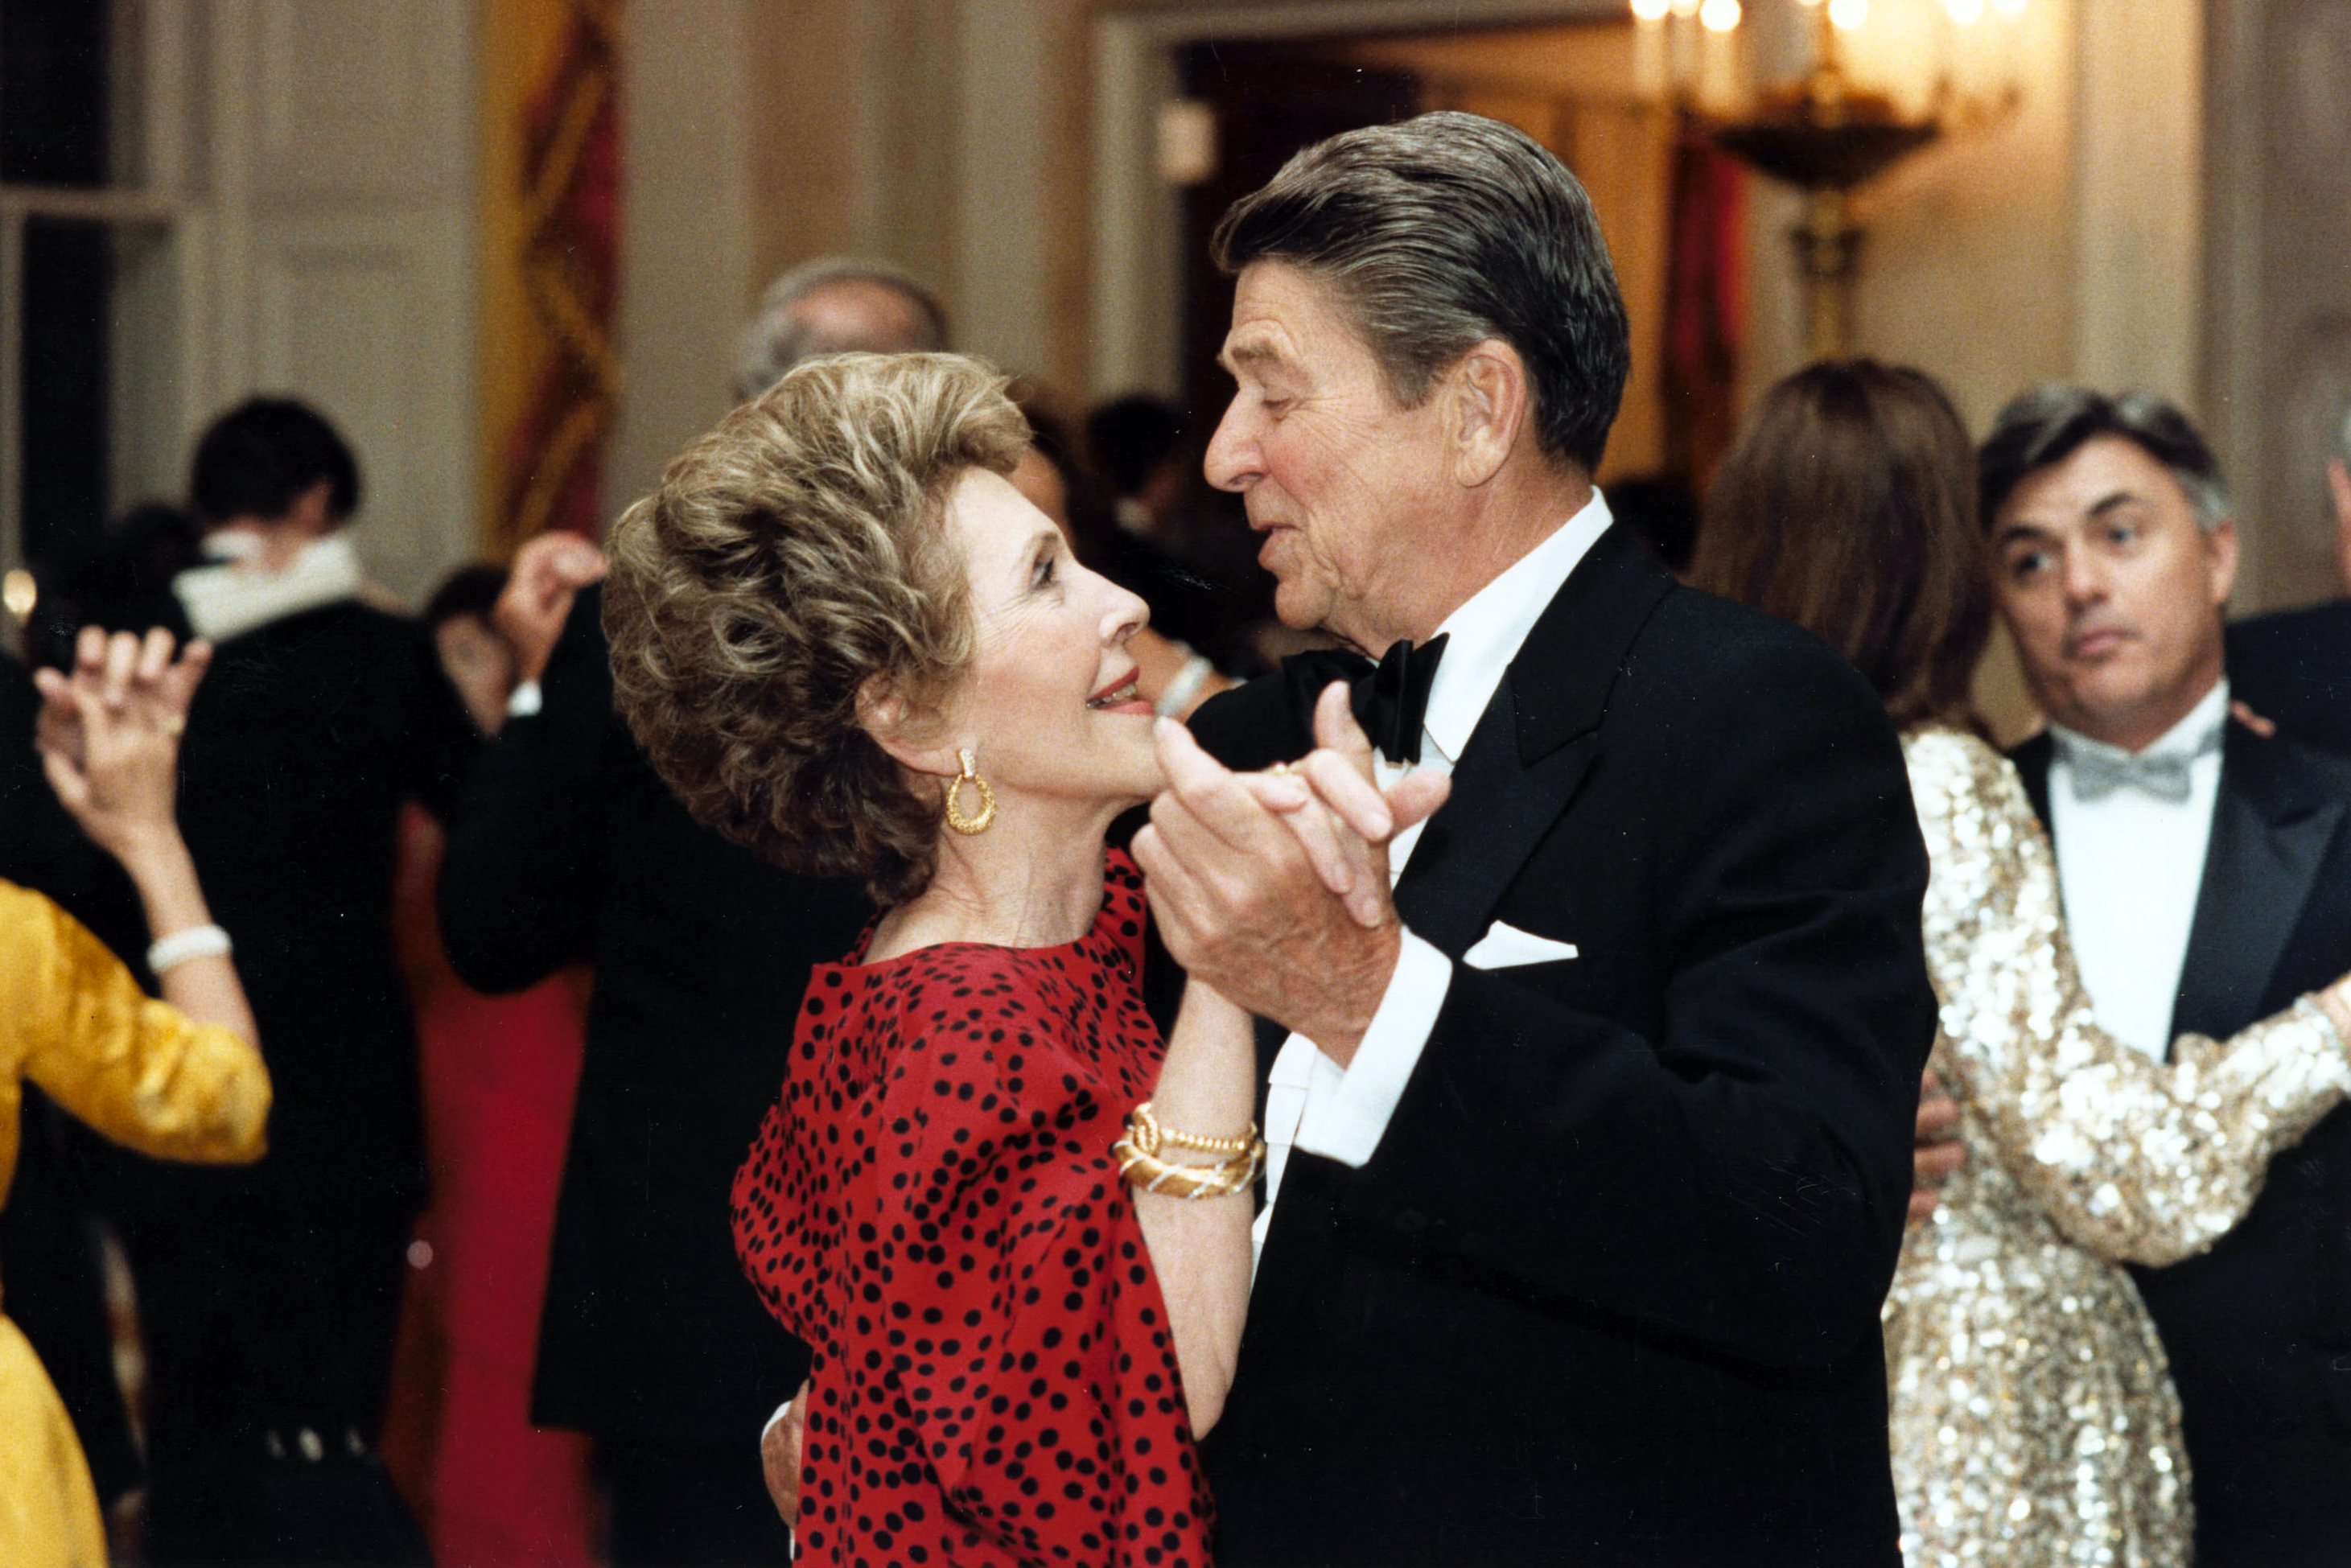 President Ronald Reagan dances with First Lady Nancy Reagan at the State Dinner for President Bendjedid of Algeria on April 17, 1985.